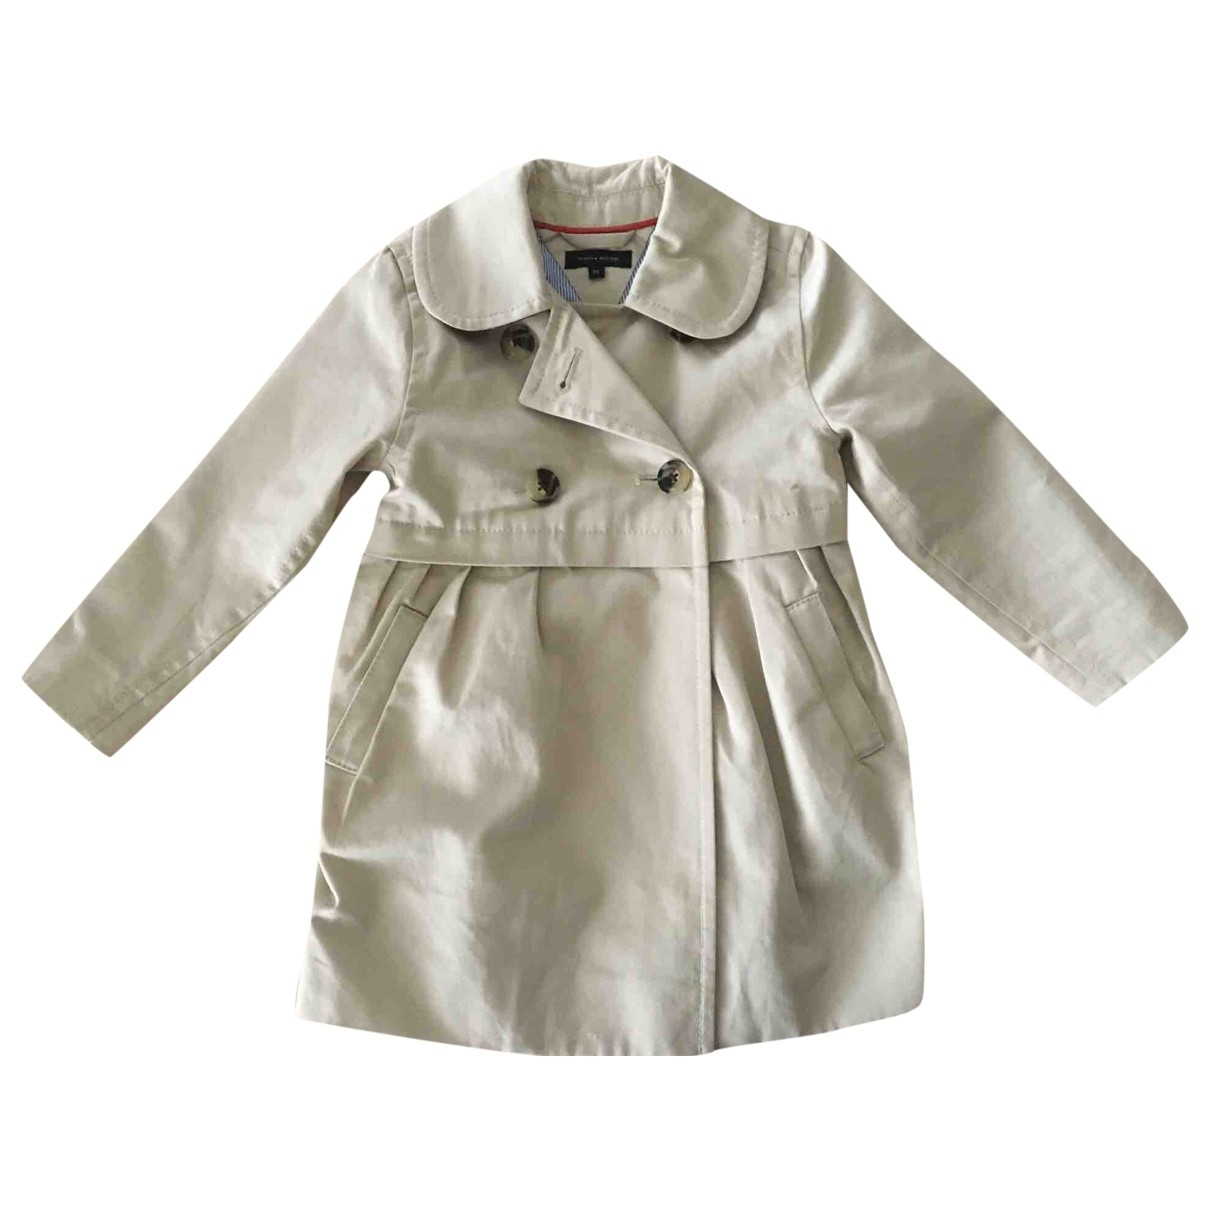 Tommy Hilfiger \N Beige Cotton jacket & coat for Kids 2 years - up to 86cm FR